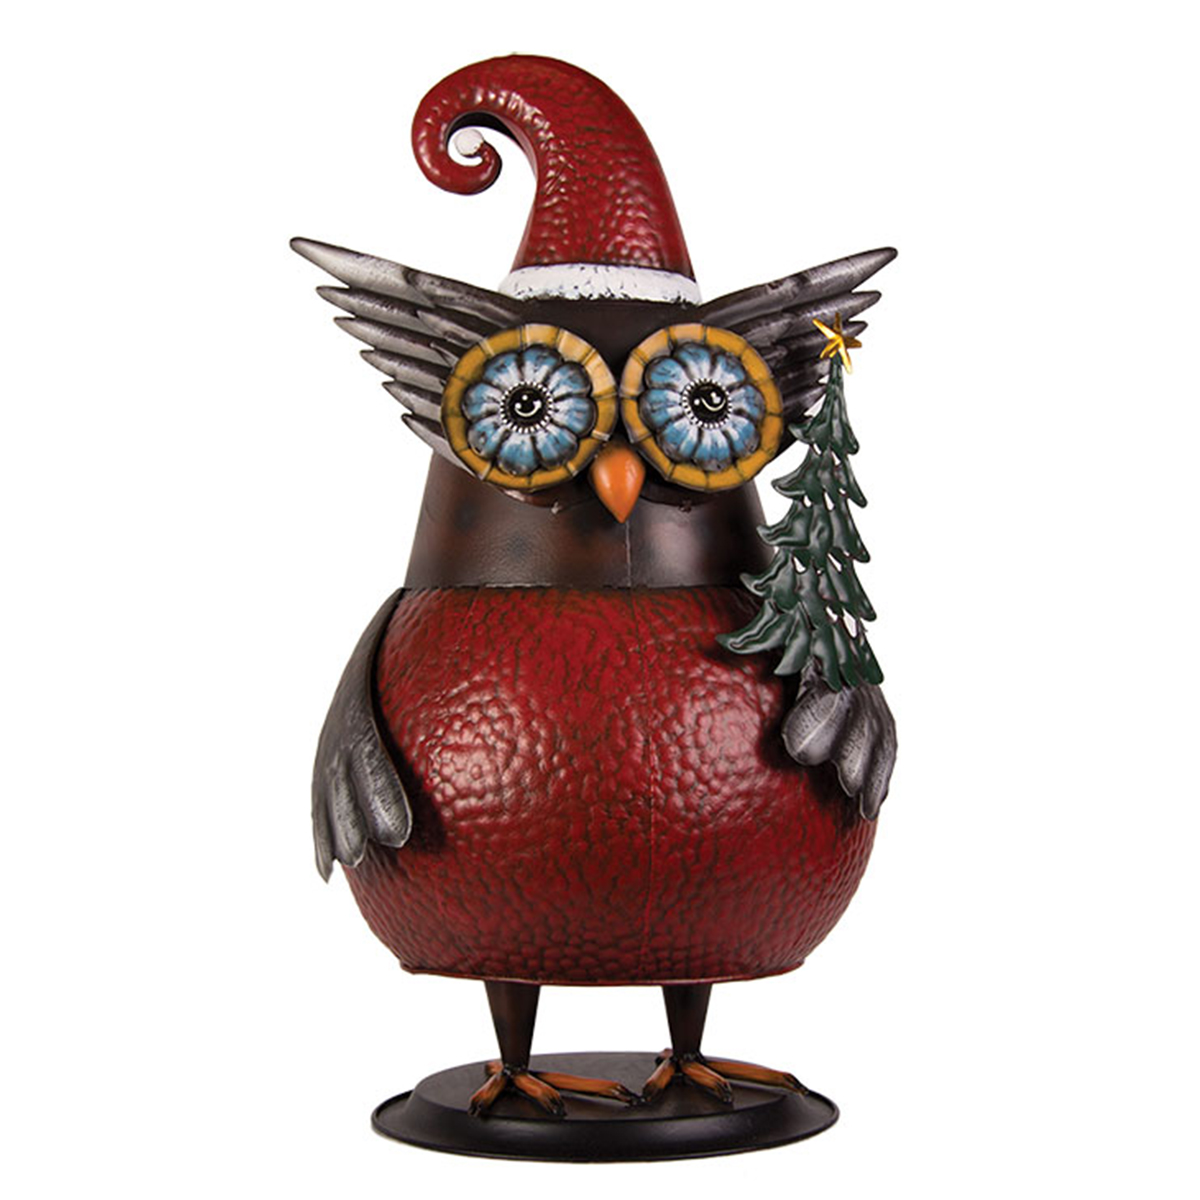 Tin Wobbly Owl